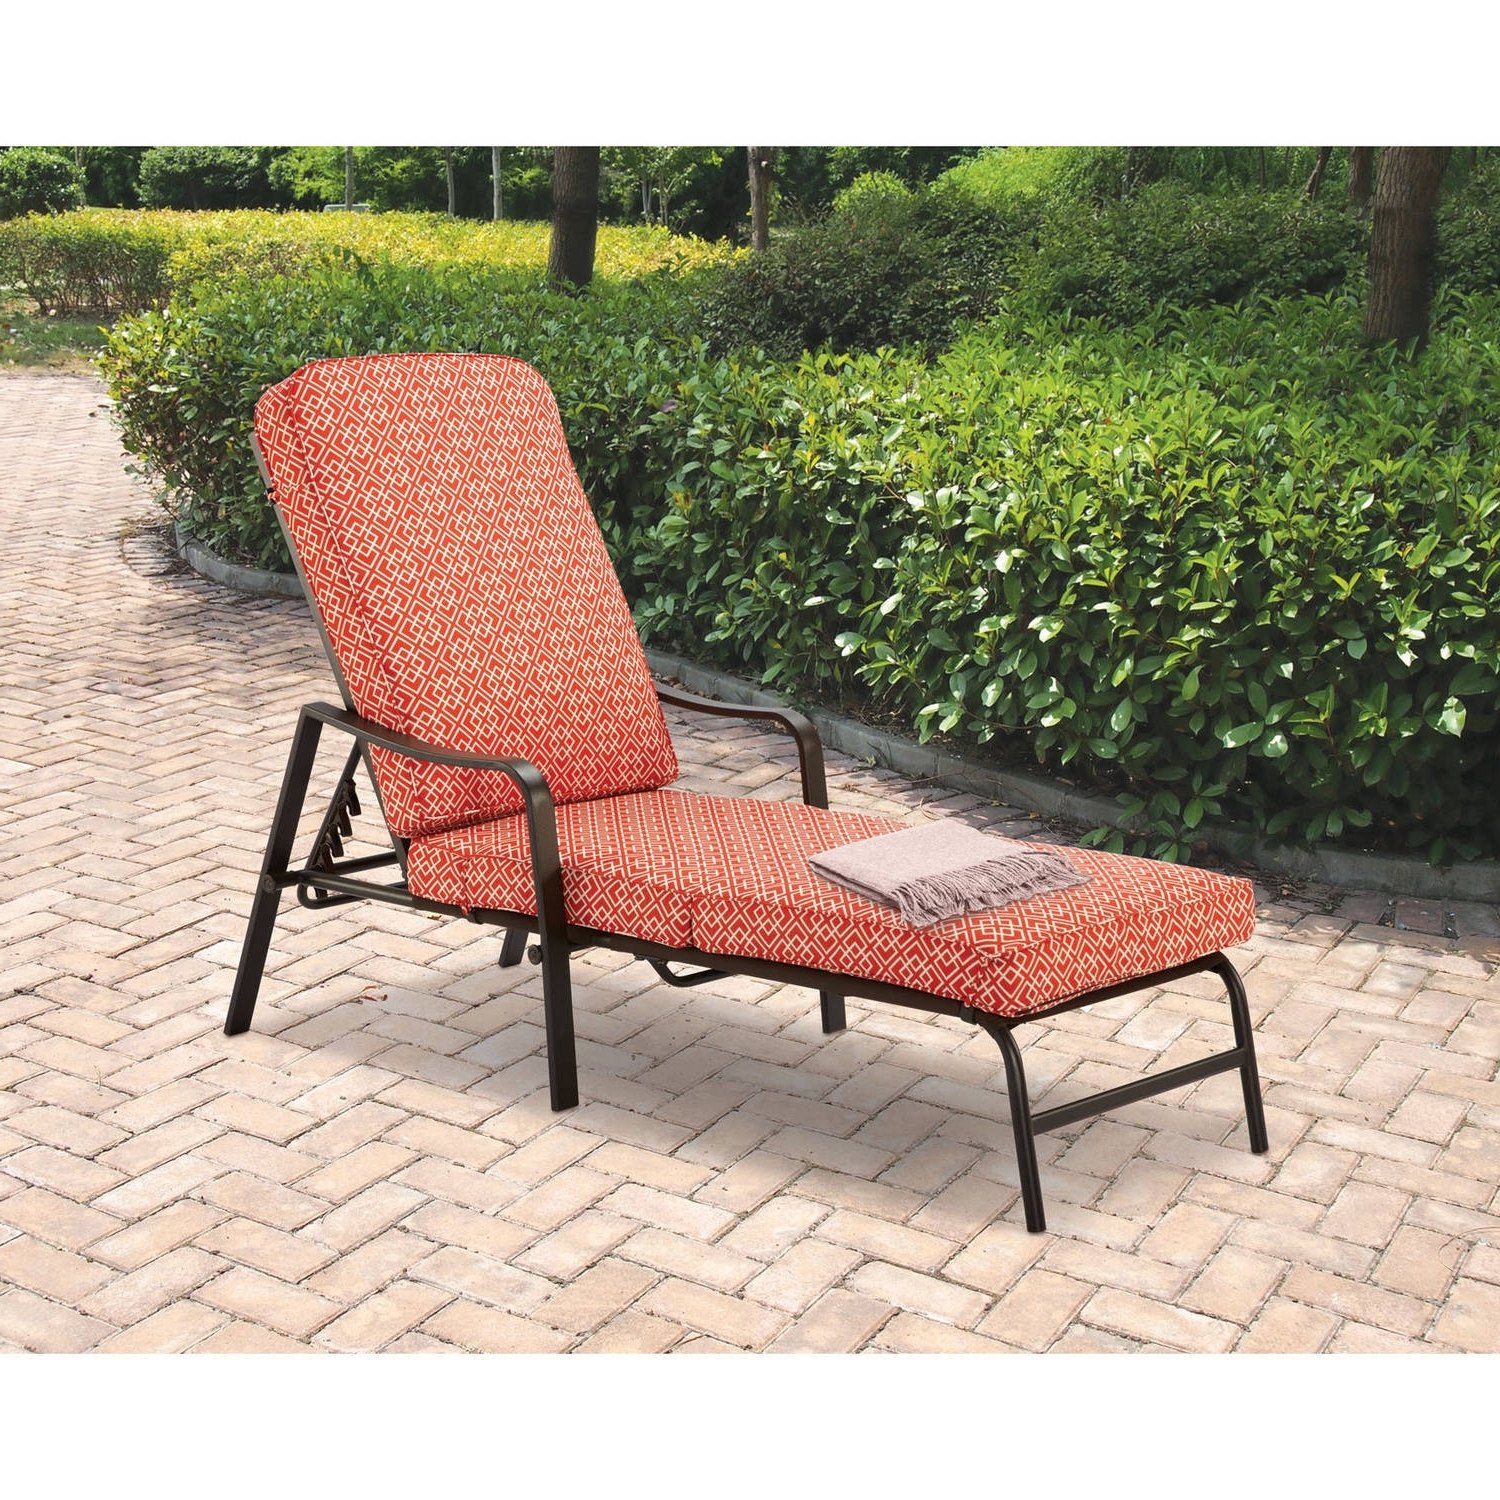 Most Recent Mainstays Outdoor Chaise Lounge, Orange Geo Pattern – Walmart Throughout Patio Chaise Lounge Cushions (View 5 of 15)